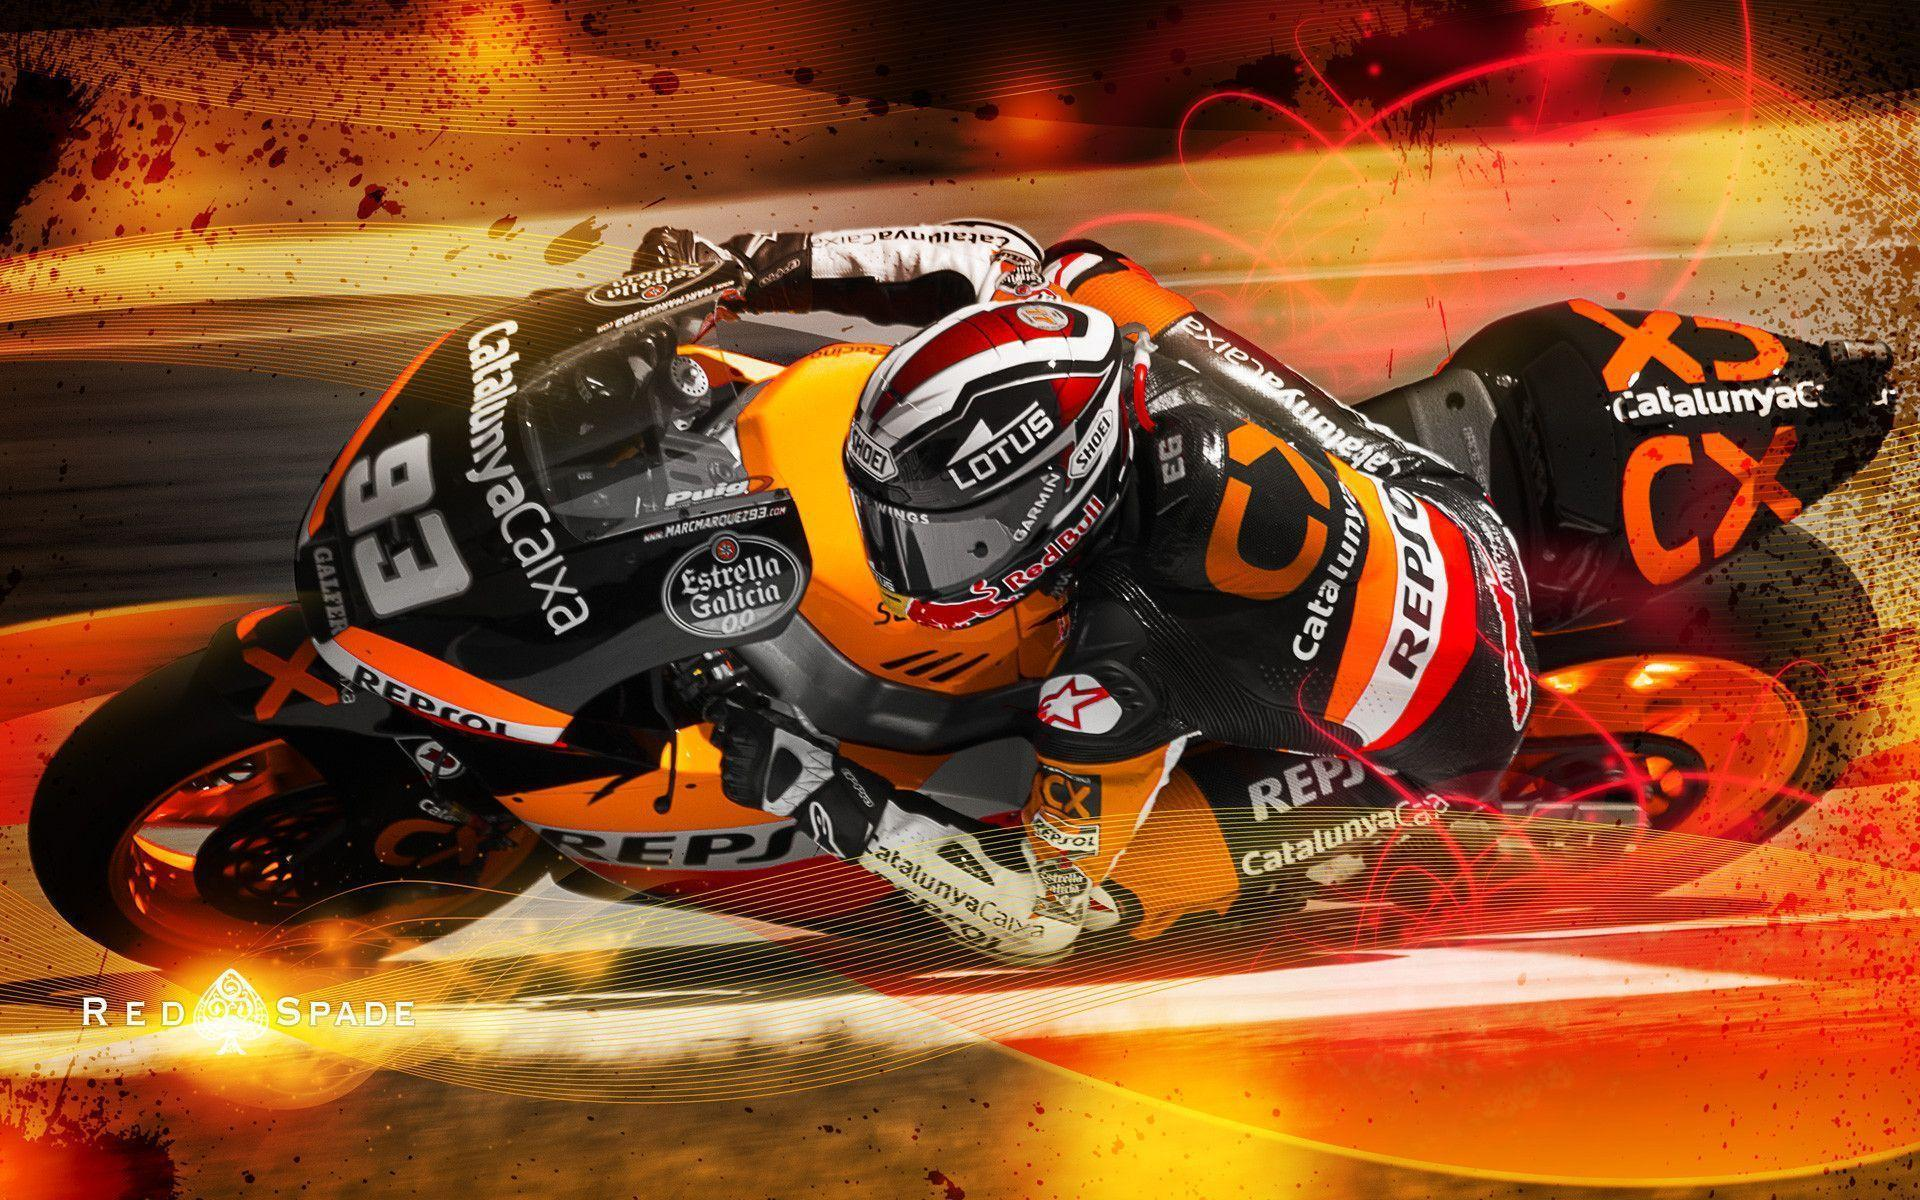 Wallpaper Laptop Motogp MotoGPic Pinterest Motogp